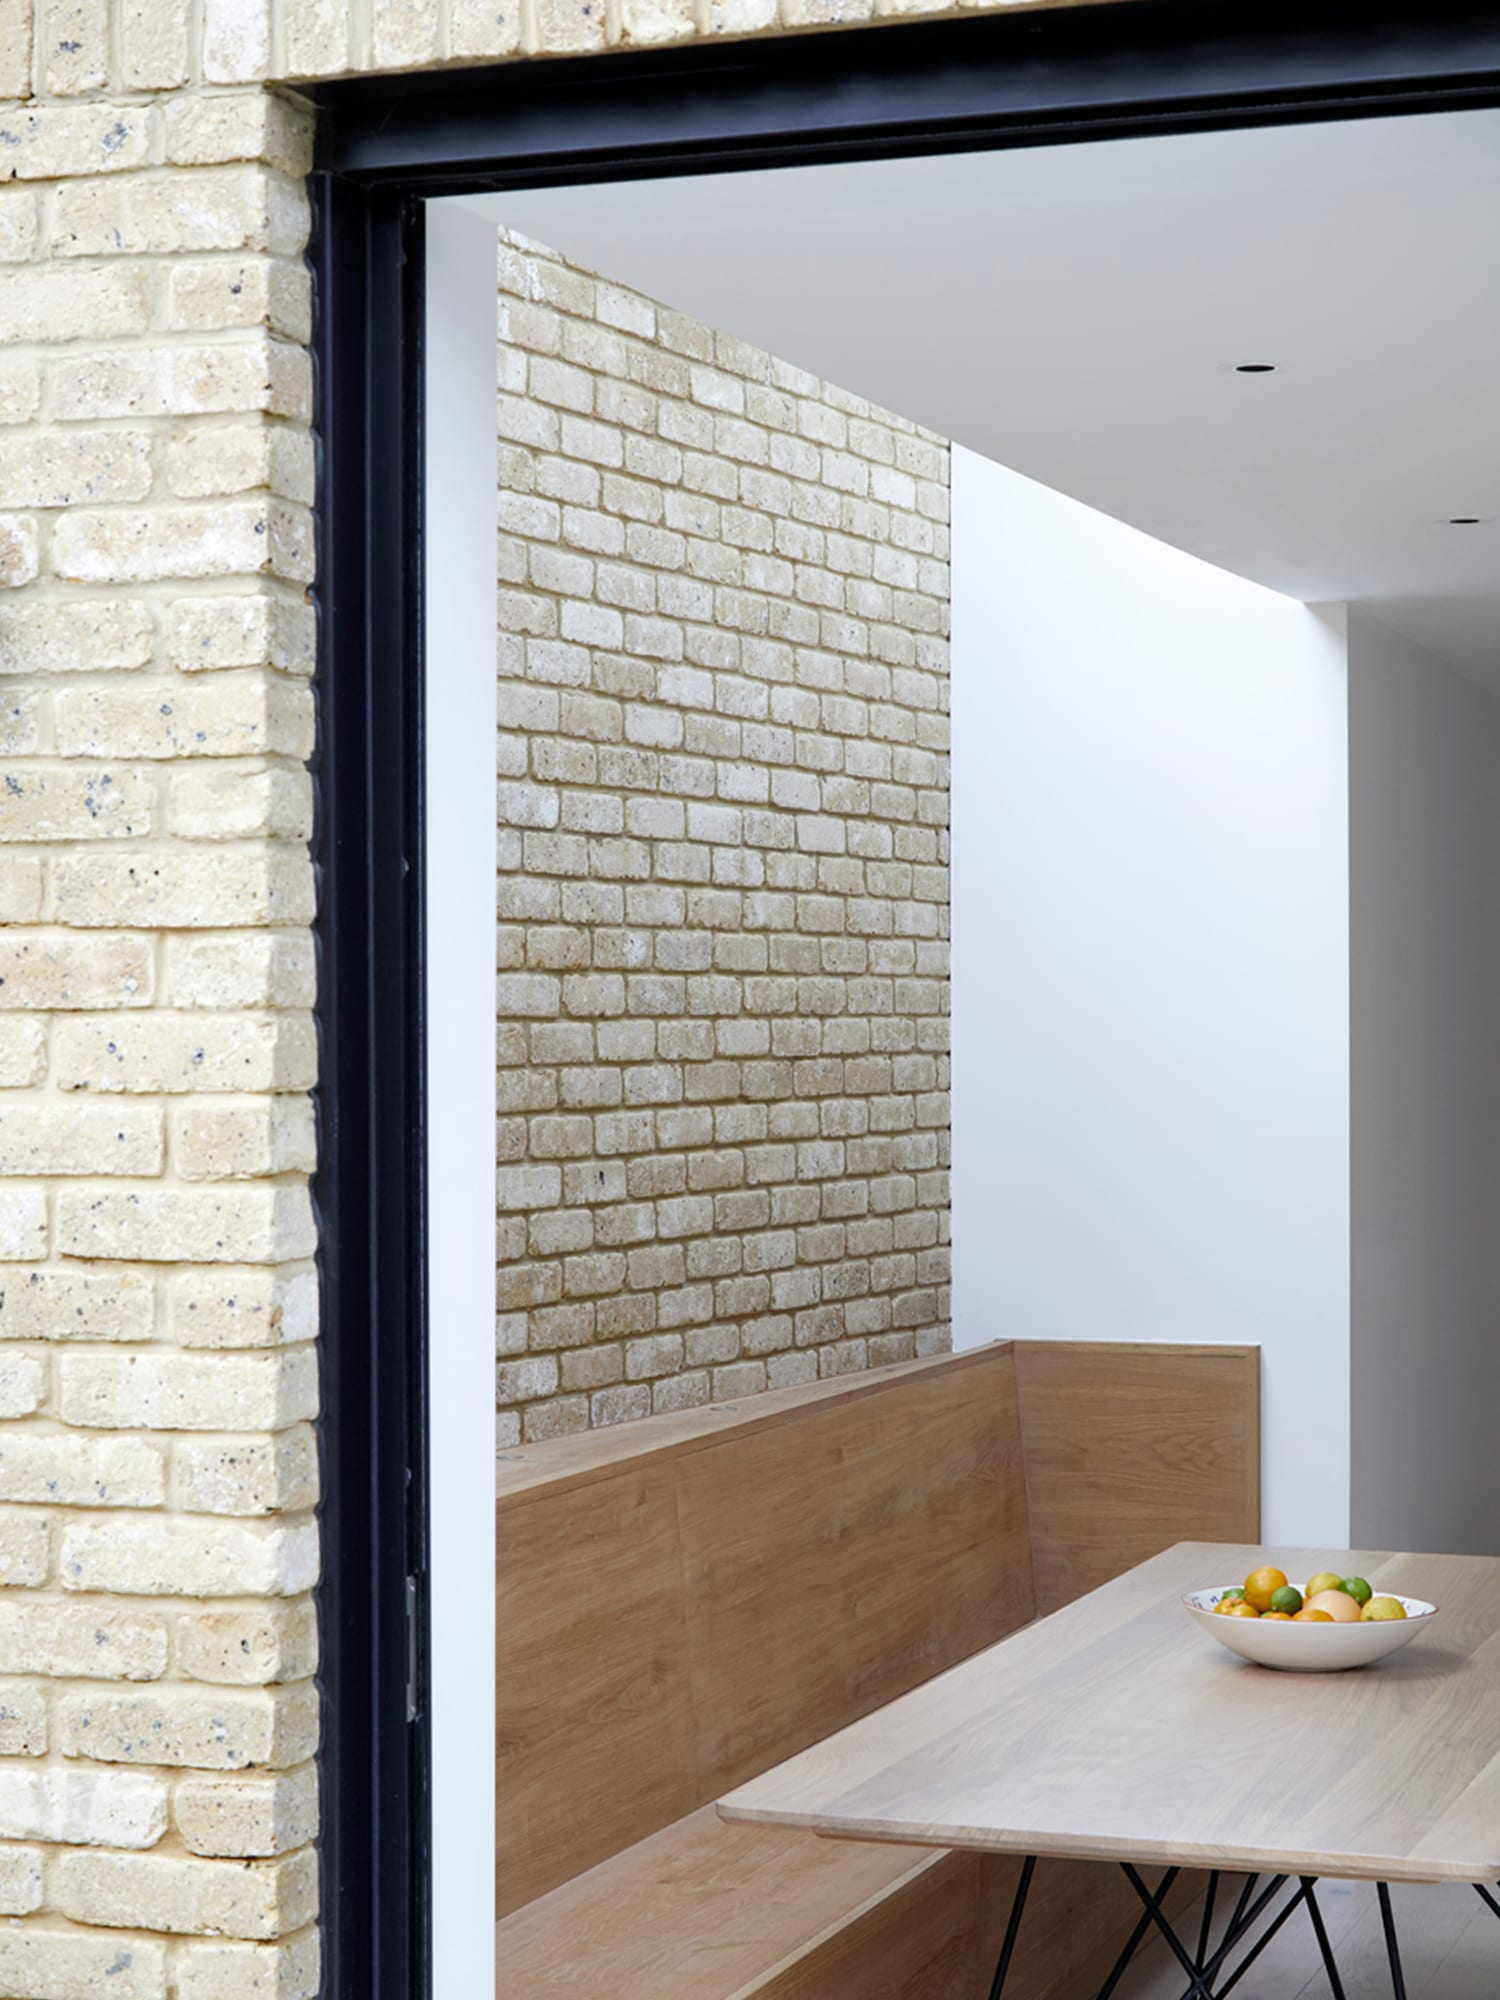 Alphonsus road clapham residential conversion refurbishment bespoke architecture exposed timber glass box (8)